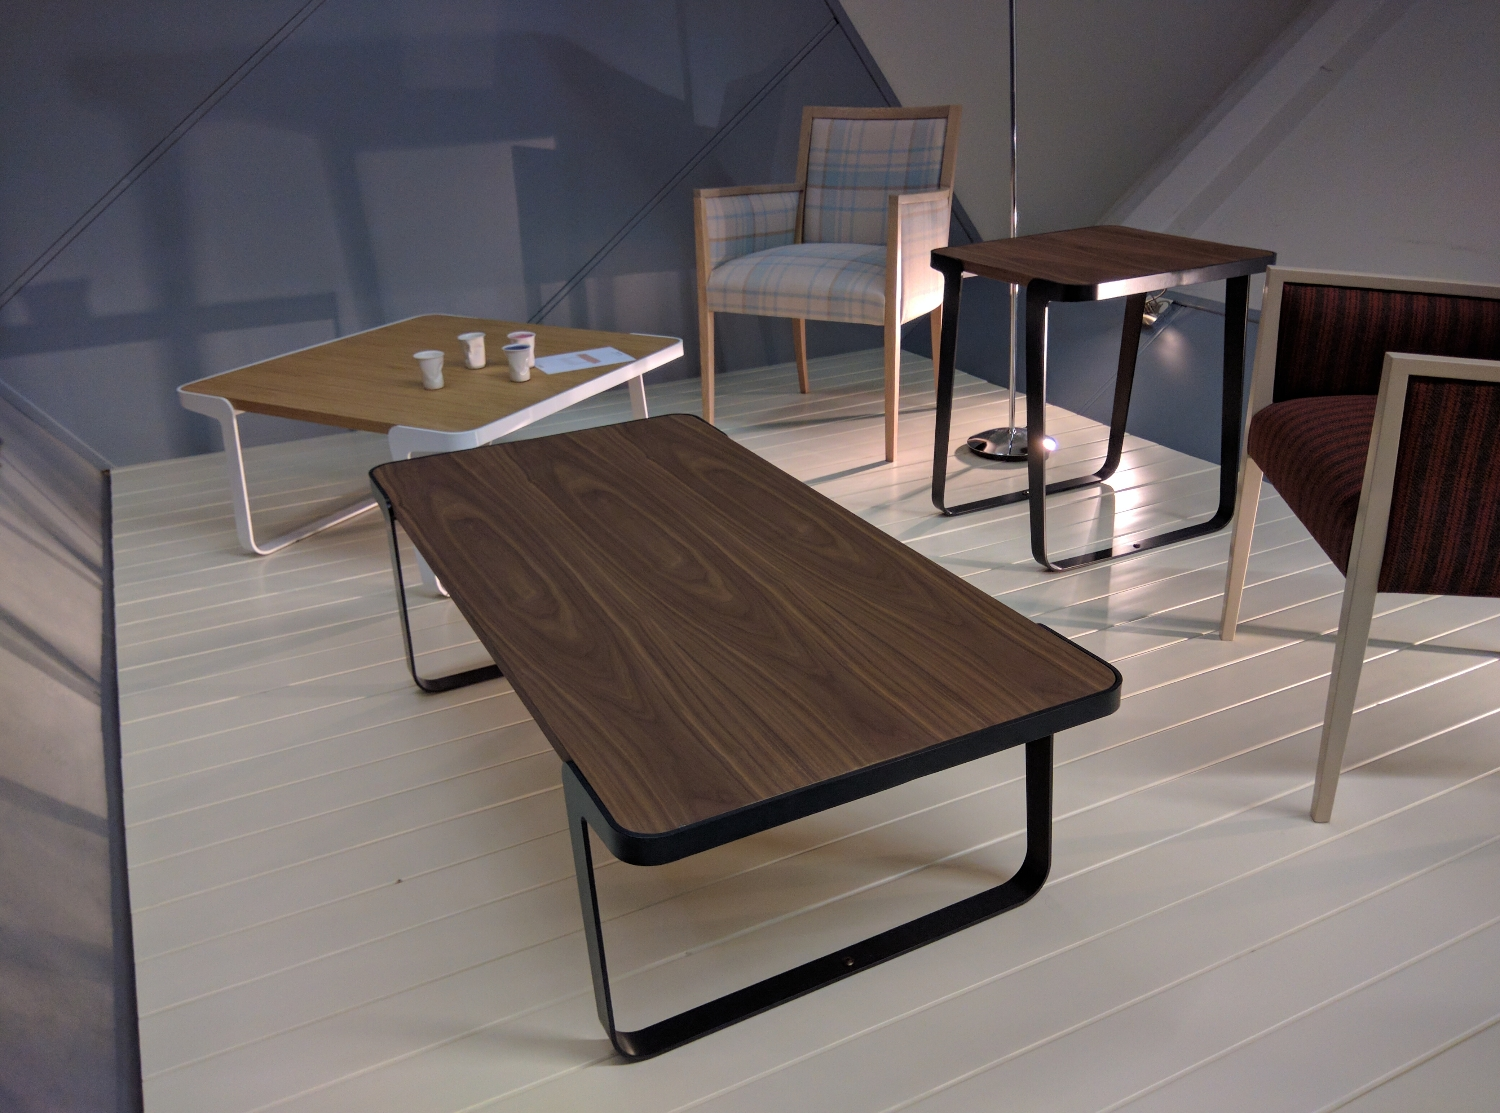 Platta  - designed for Profoli at IMM Cologne